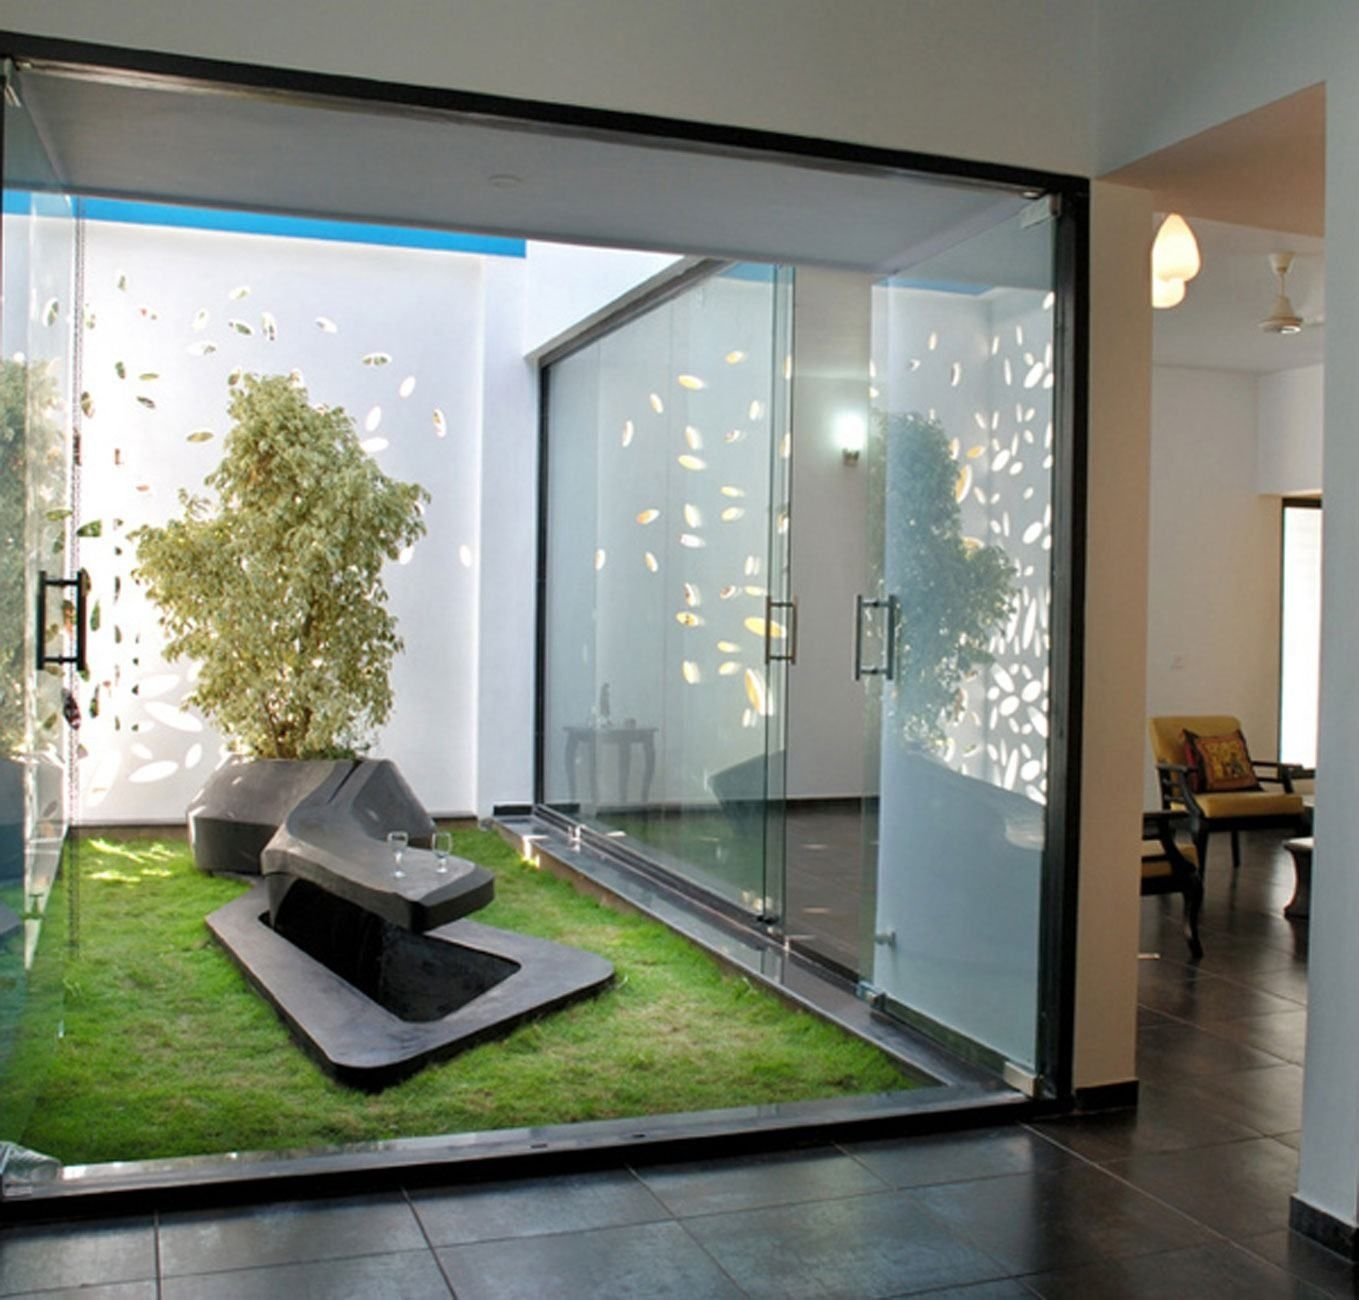 Small And Doable, And I'd Already Been Thinking Of Glass Walls with House And Garden Interior Design